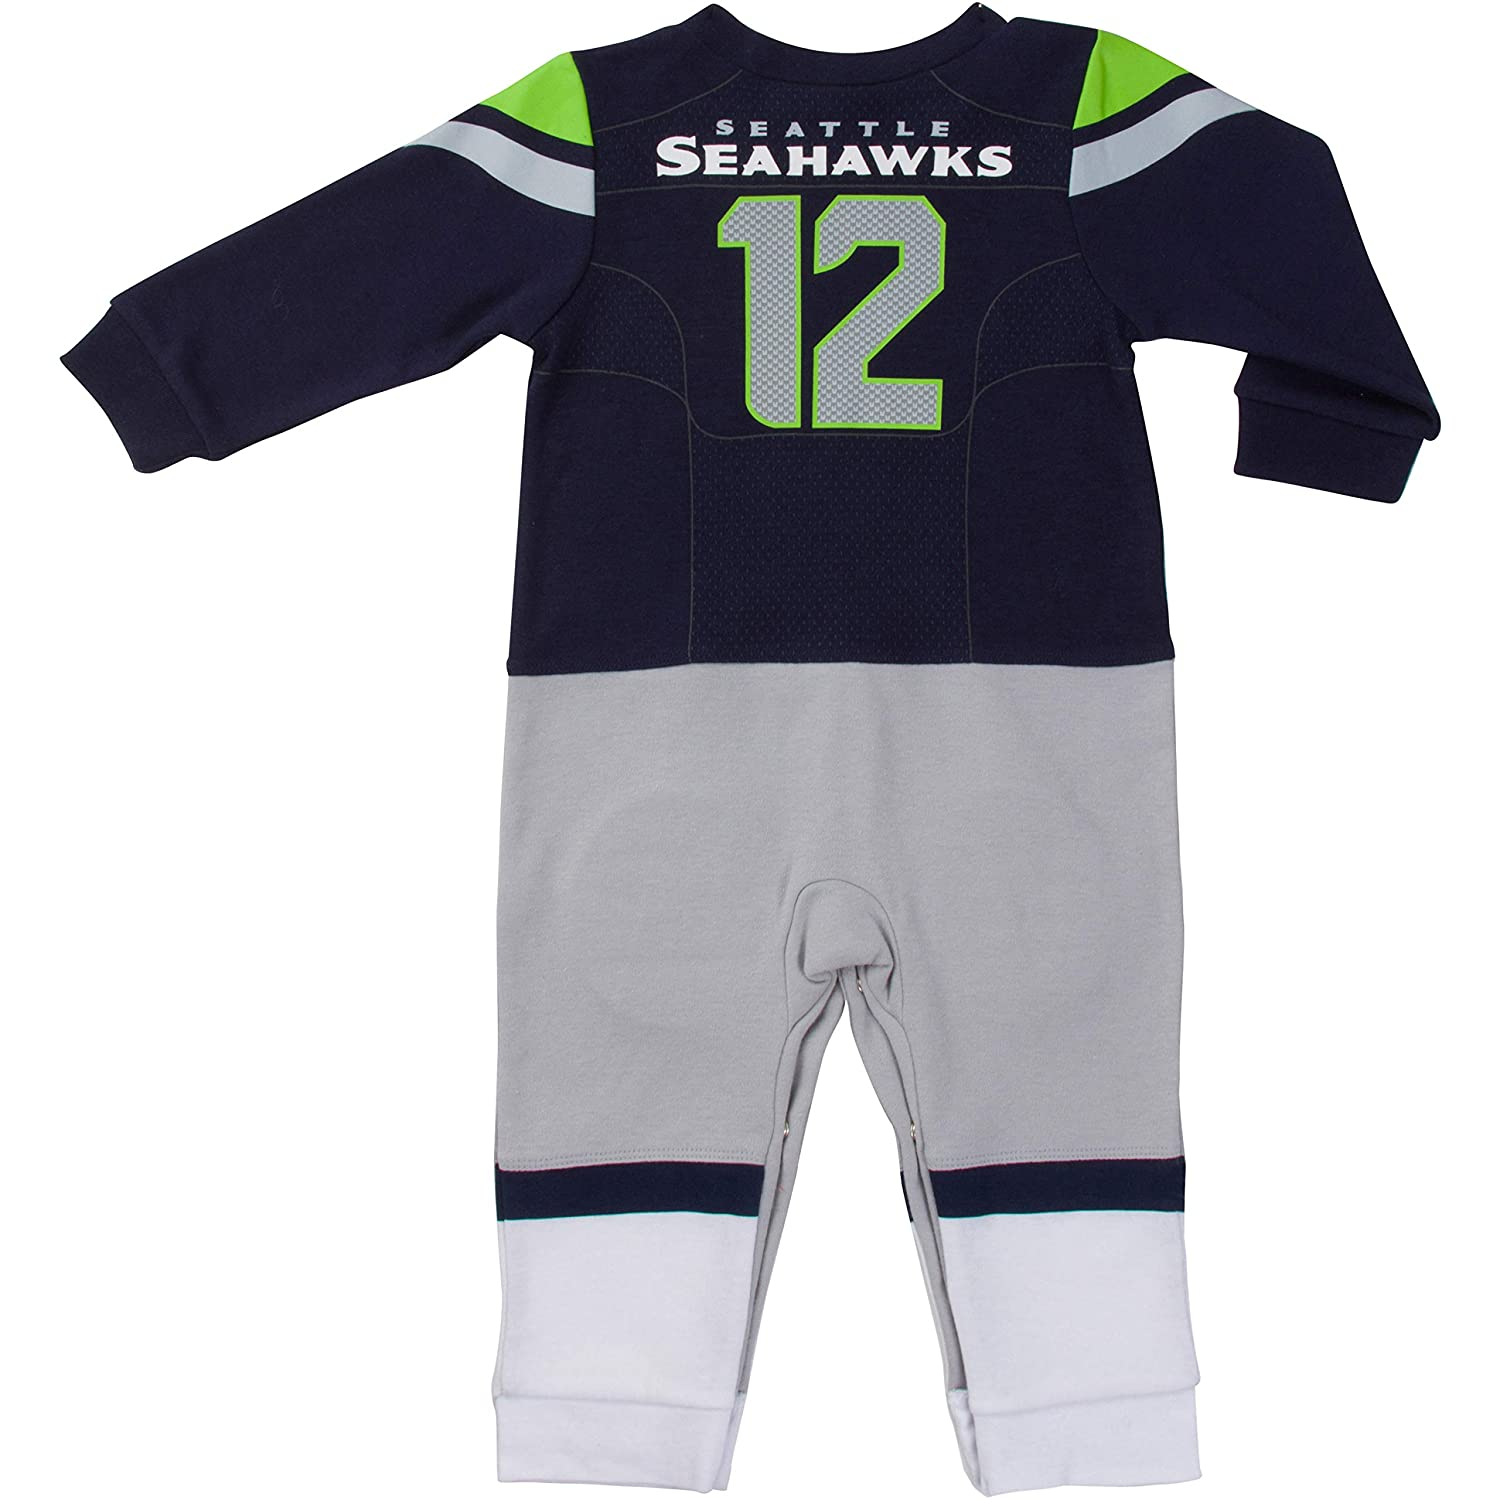 ed331728 Amazon.com : NFL Seattle Seahawks Unisex-Baby Footysuit Coverall ...